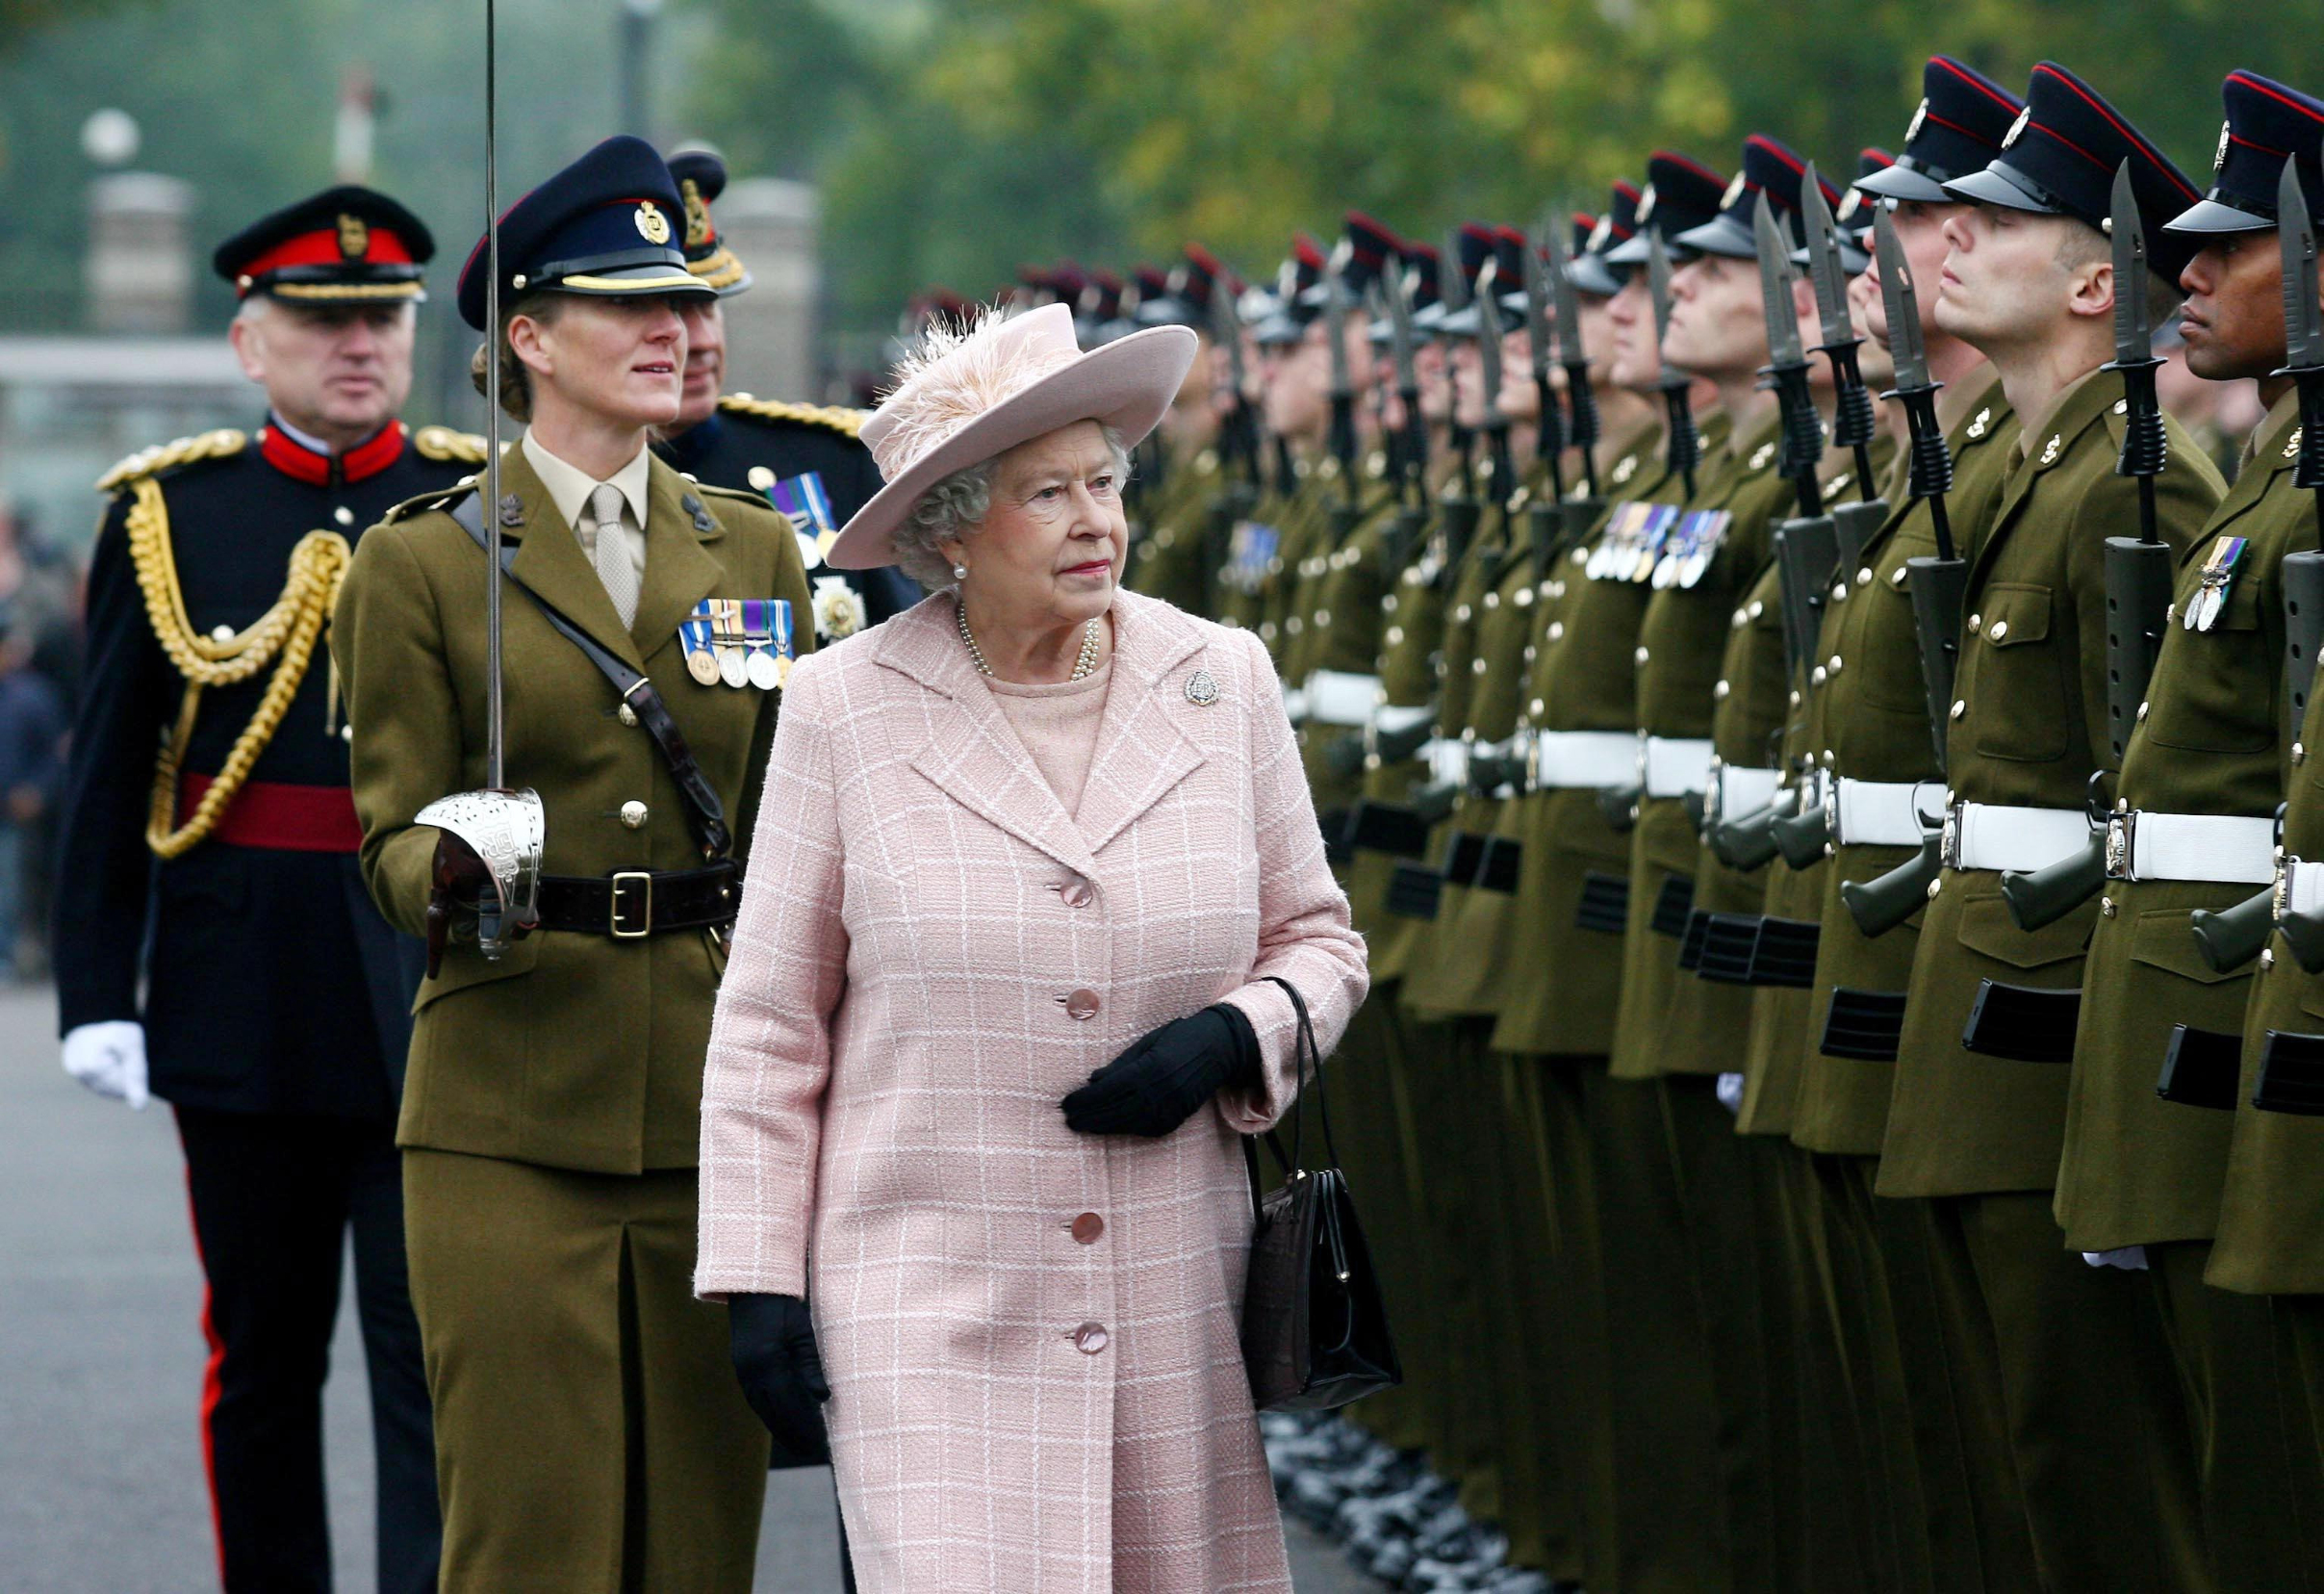 File photo dated 25/10/07 of Queen Elizabeth II inspecting the guard of honour during a visit to the Corps of Royal Engineers at Brompton Barracks, Chatham, Kent., Image: 518102826, License: Rights-managed, Restrictions: FILE PHOTO, Model Release: no, Credit line: Gareth Fuller / PA Images / Profimedia